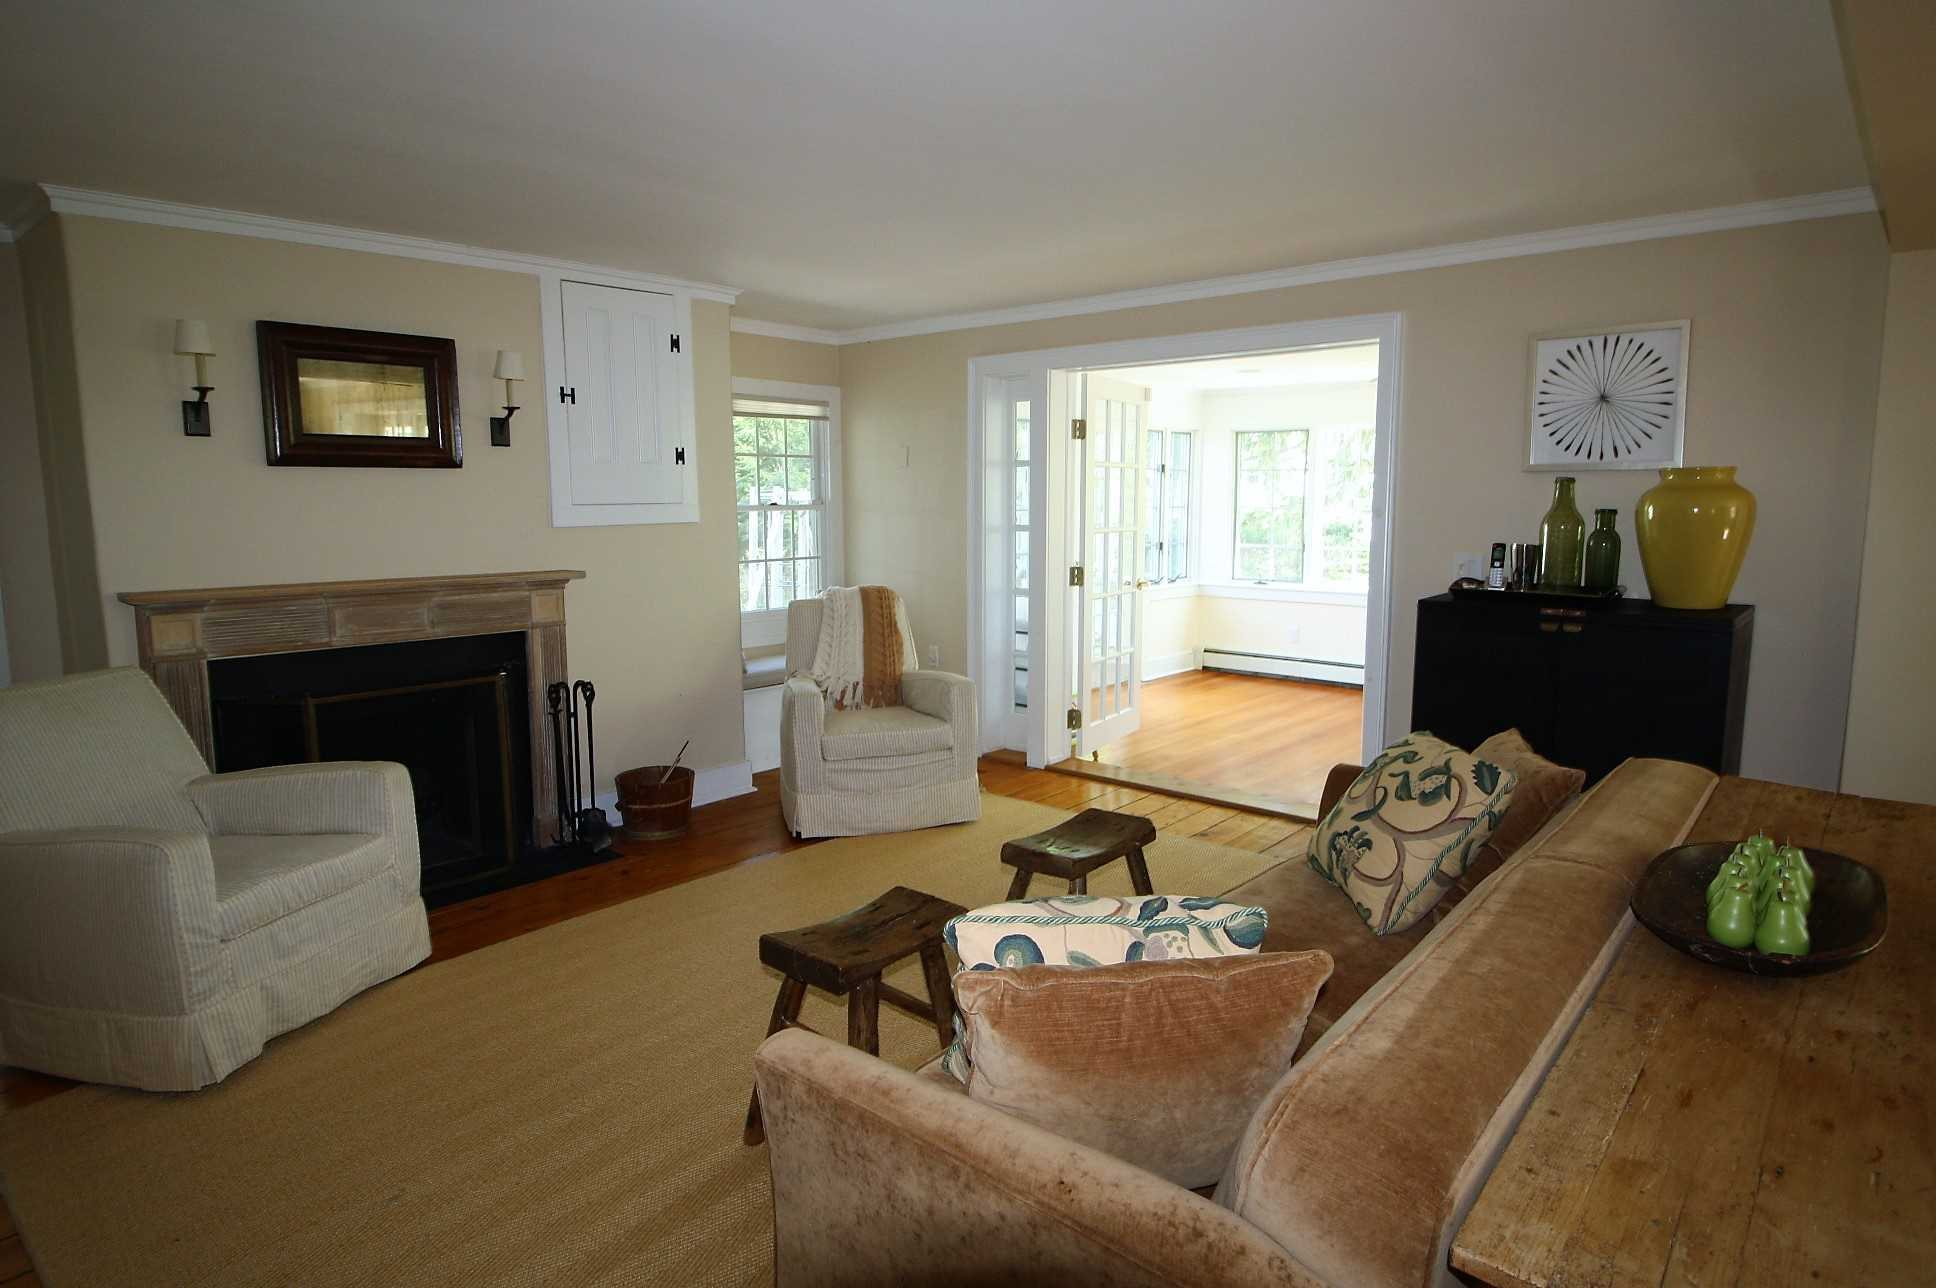 Additional photo for property listing at 2 QUAKER LAKE Road 2 QUAKER LAKE Road Pawling, New York 12564 United States